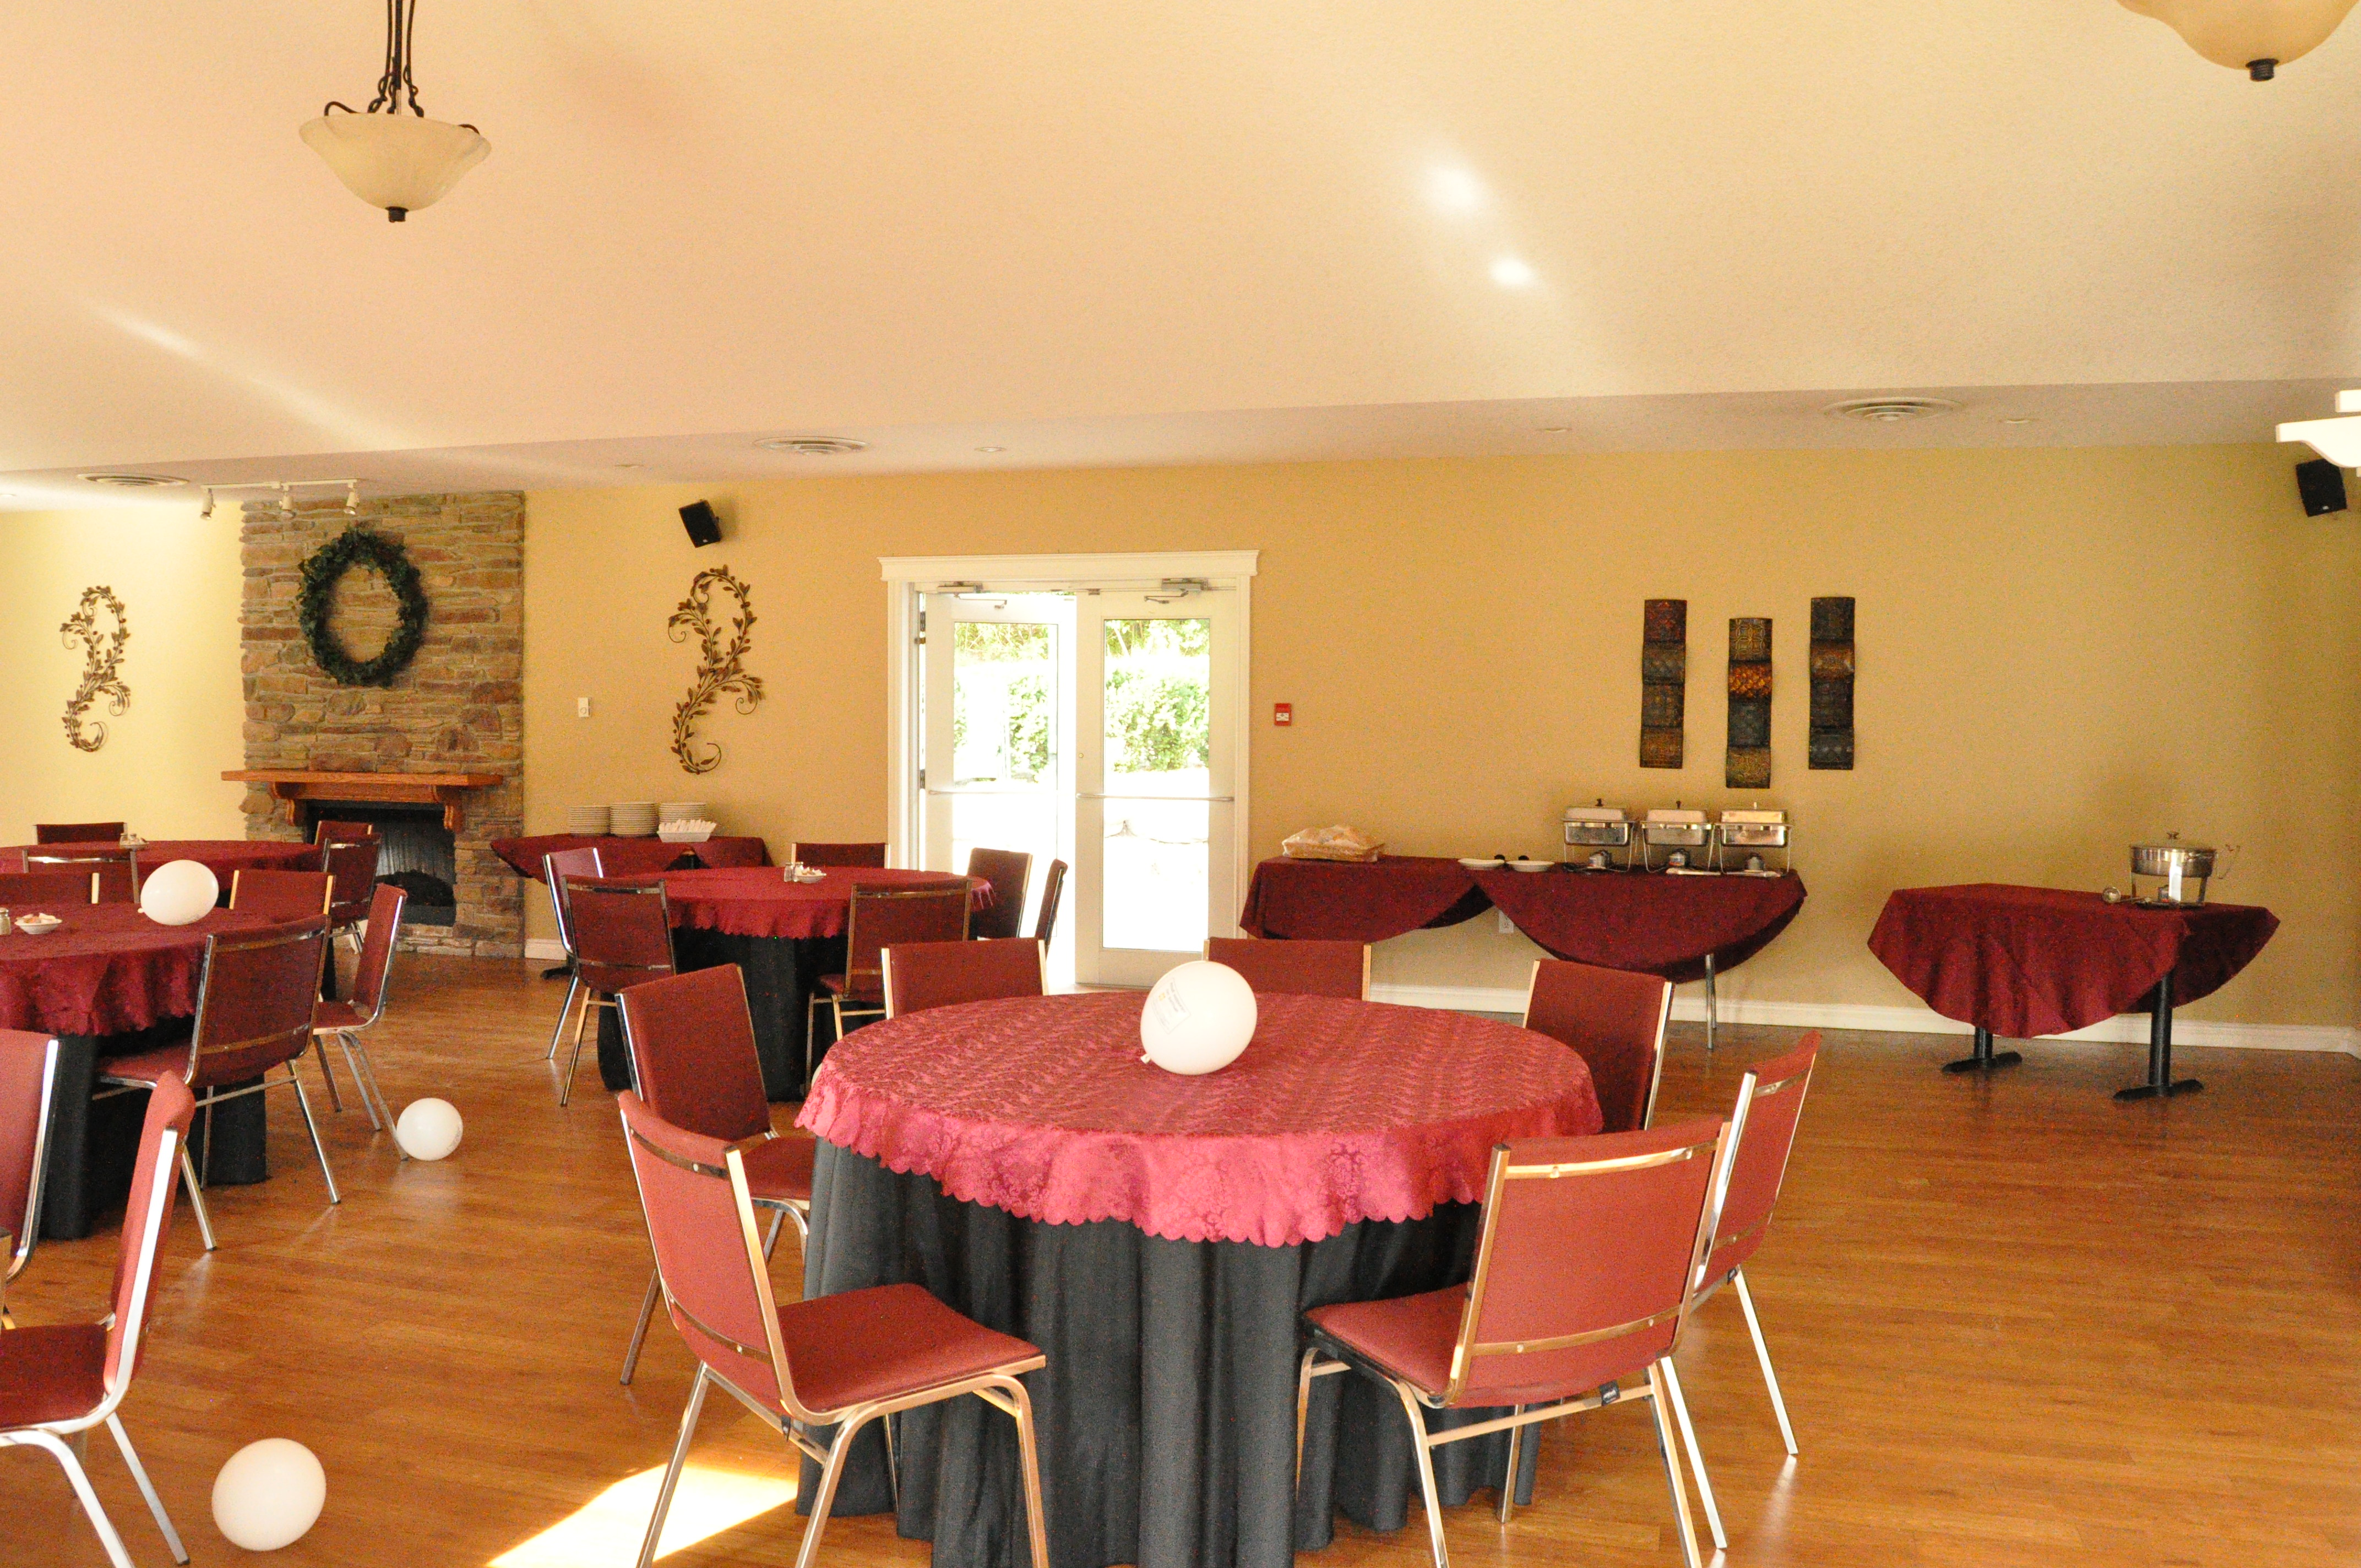 golf course banquet hall, naquet hall port stanley